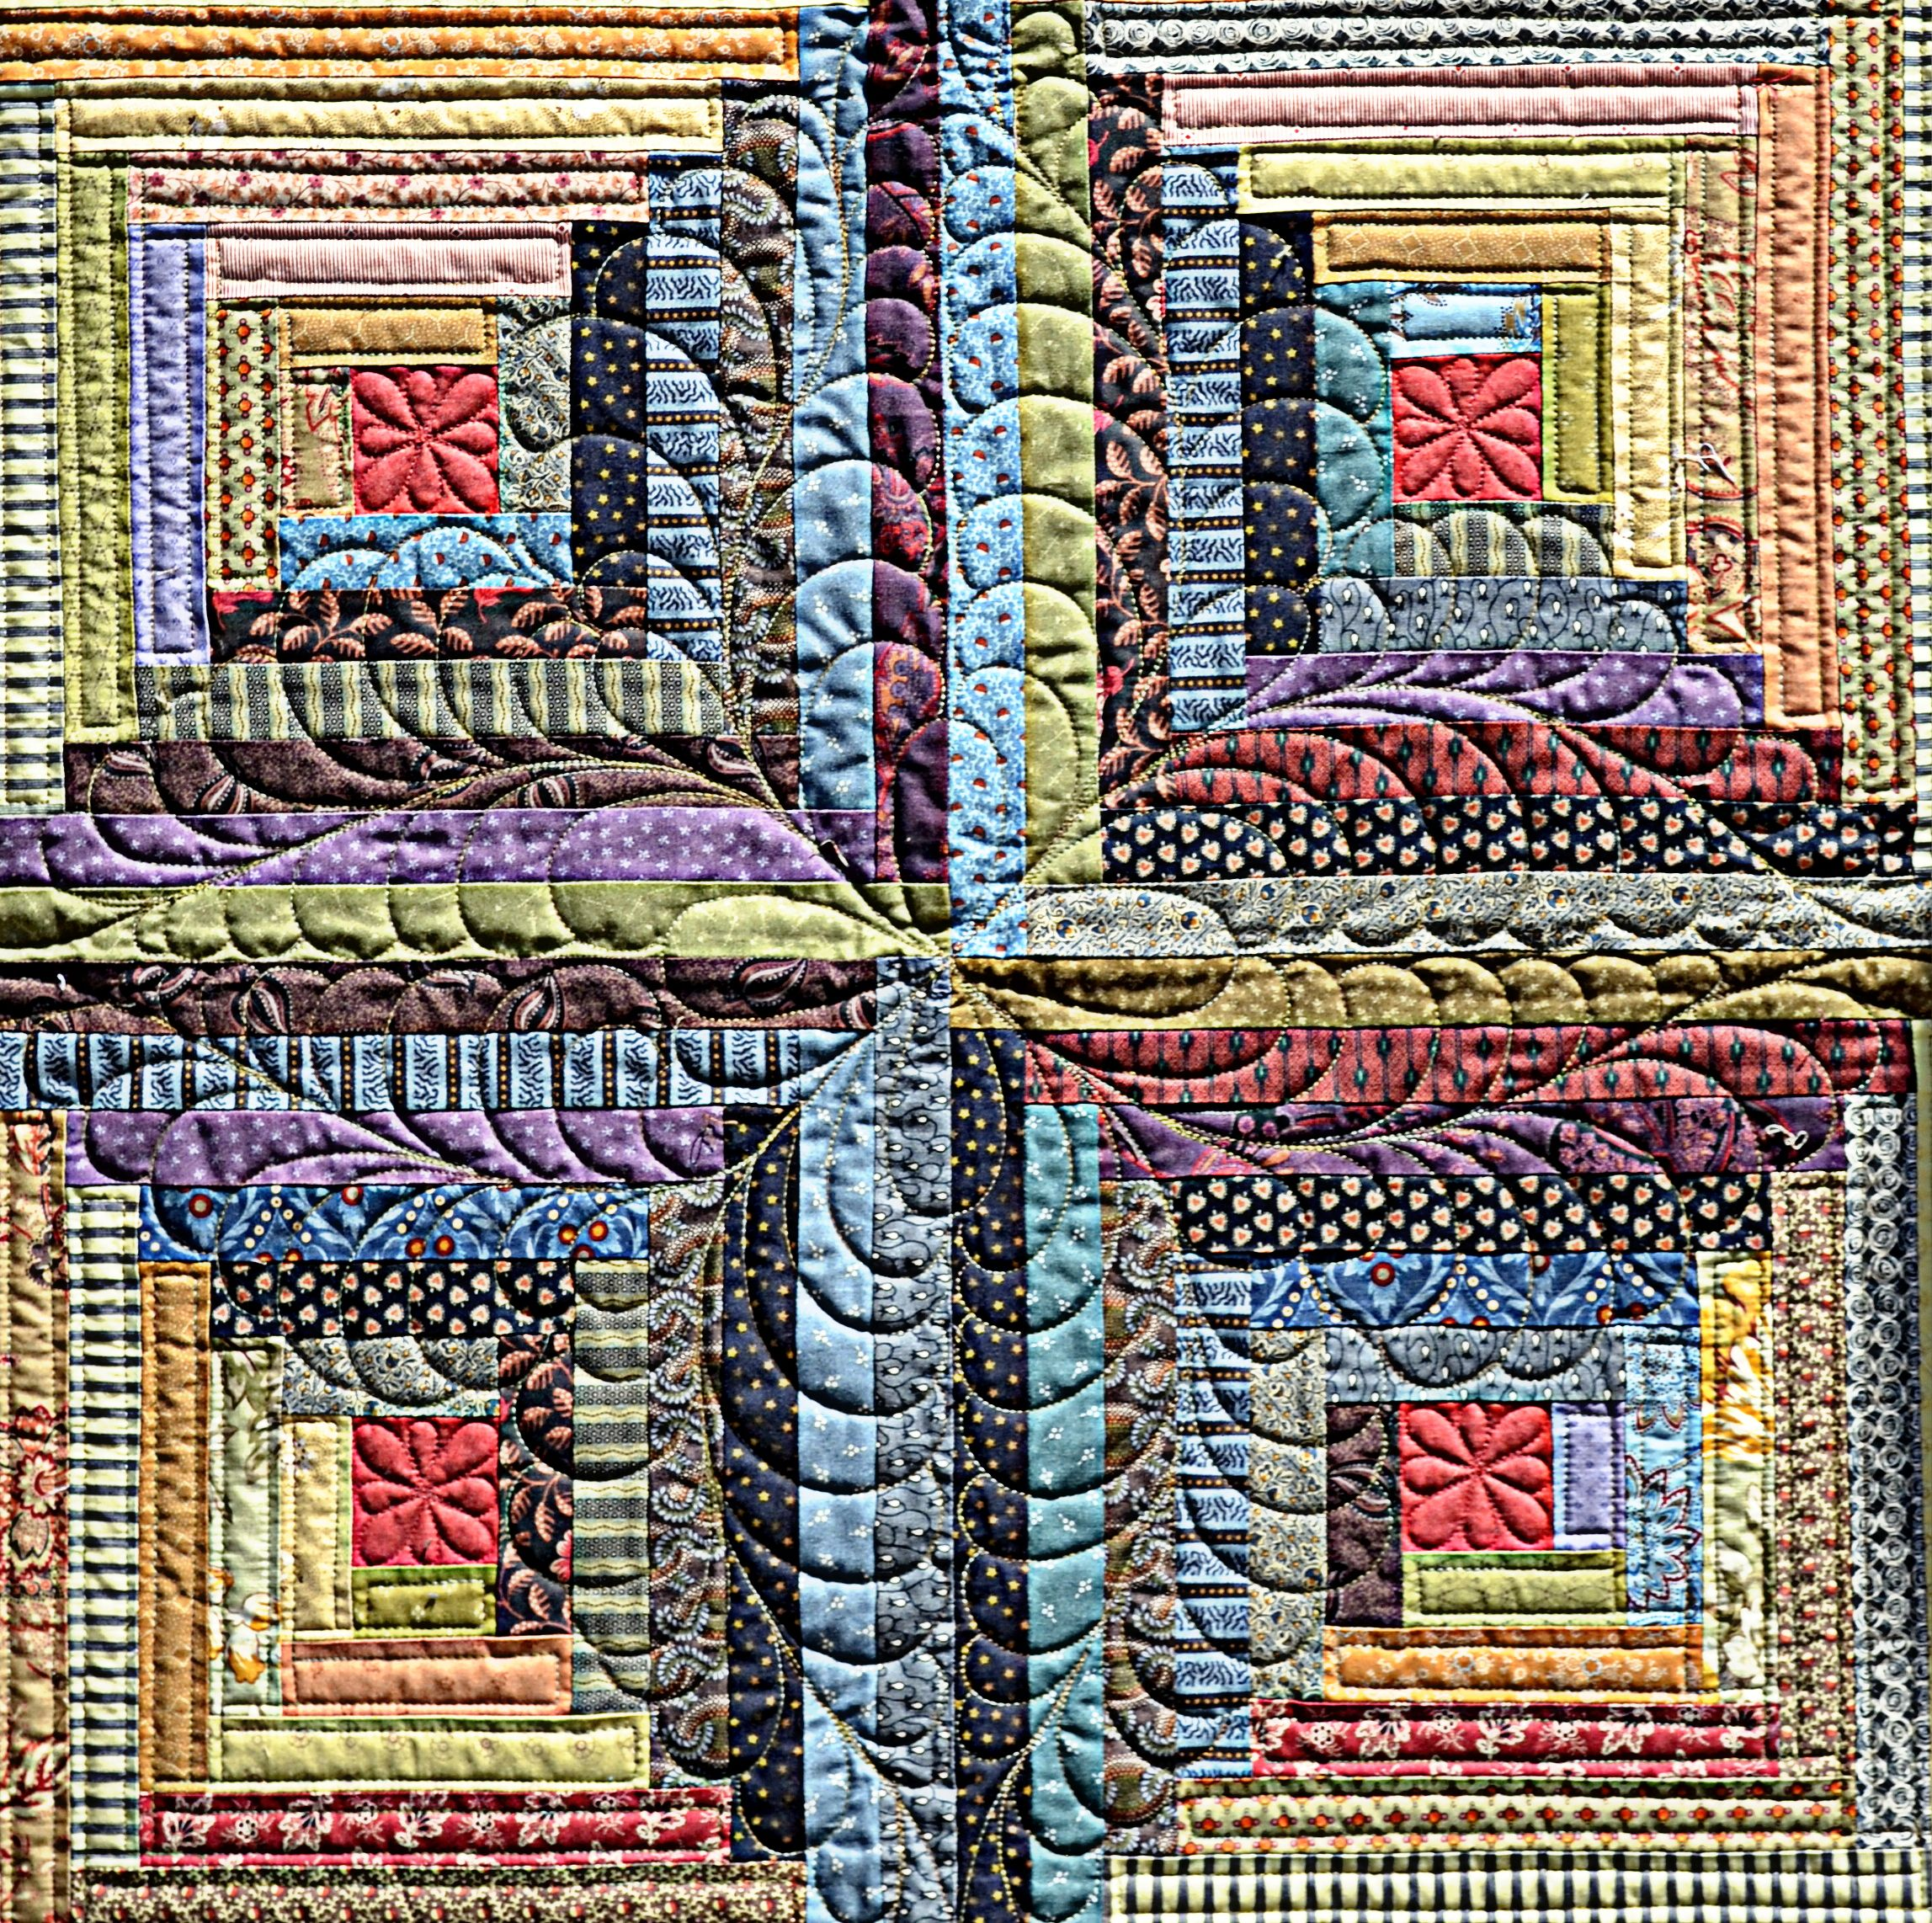 Quilting Designs For Log Cabin Blocks : 1000+ images about LOG CABIN QUILTS on Pinterest Log cabins, Log cabin quilts and Quilt